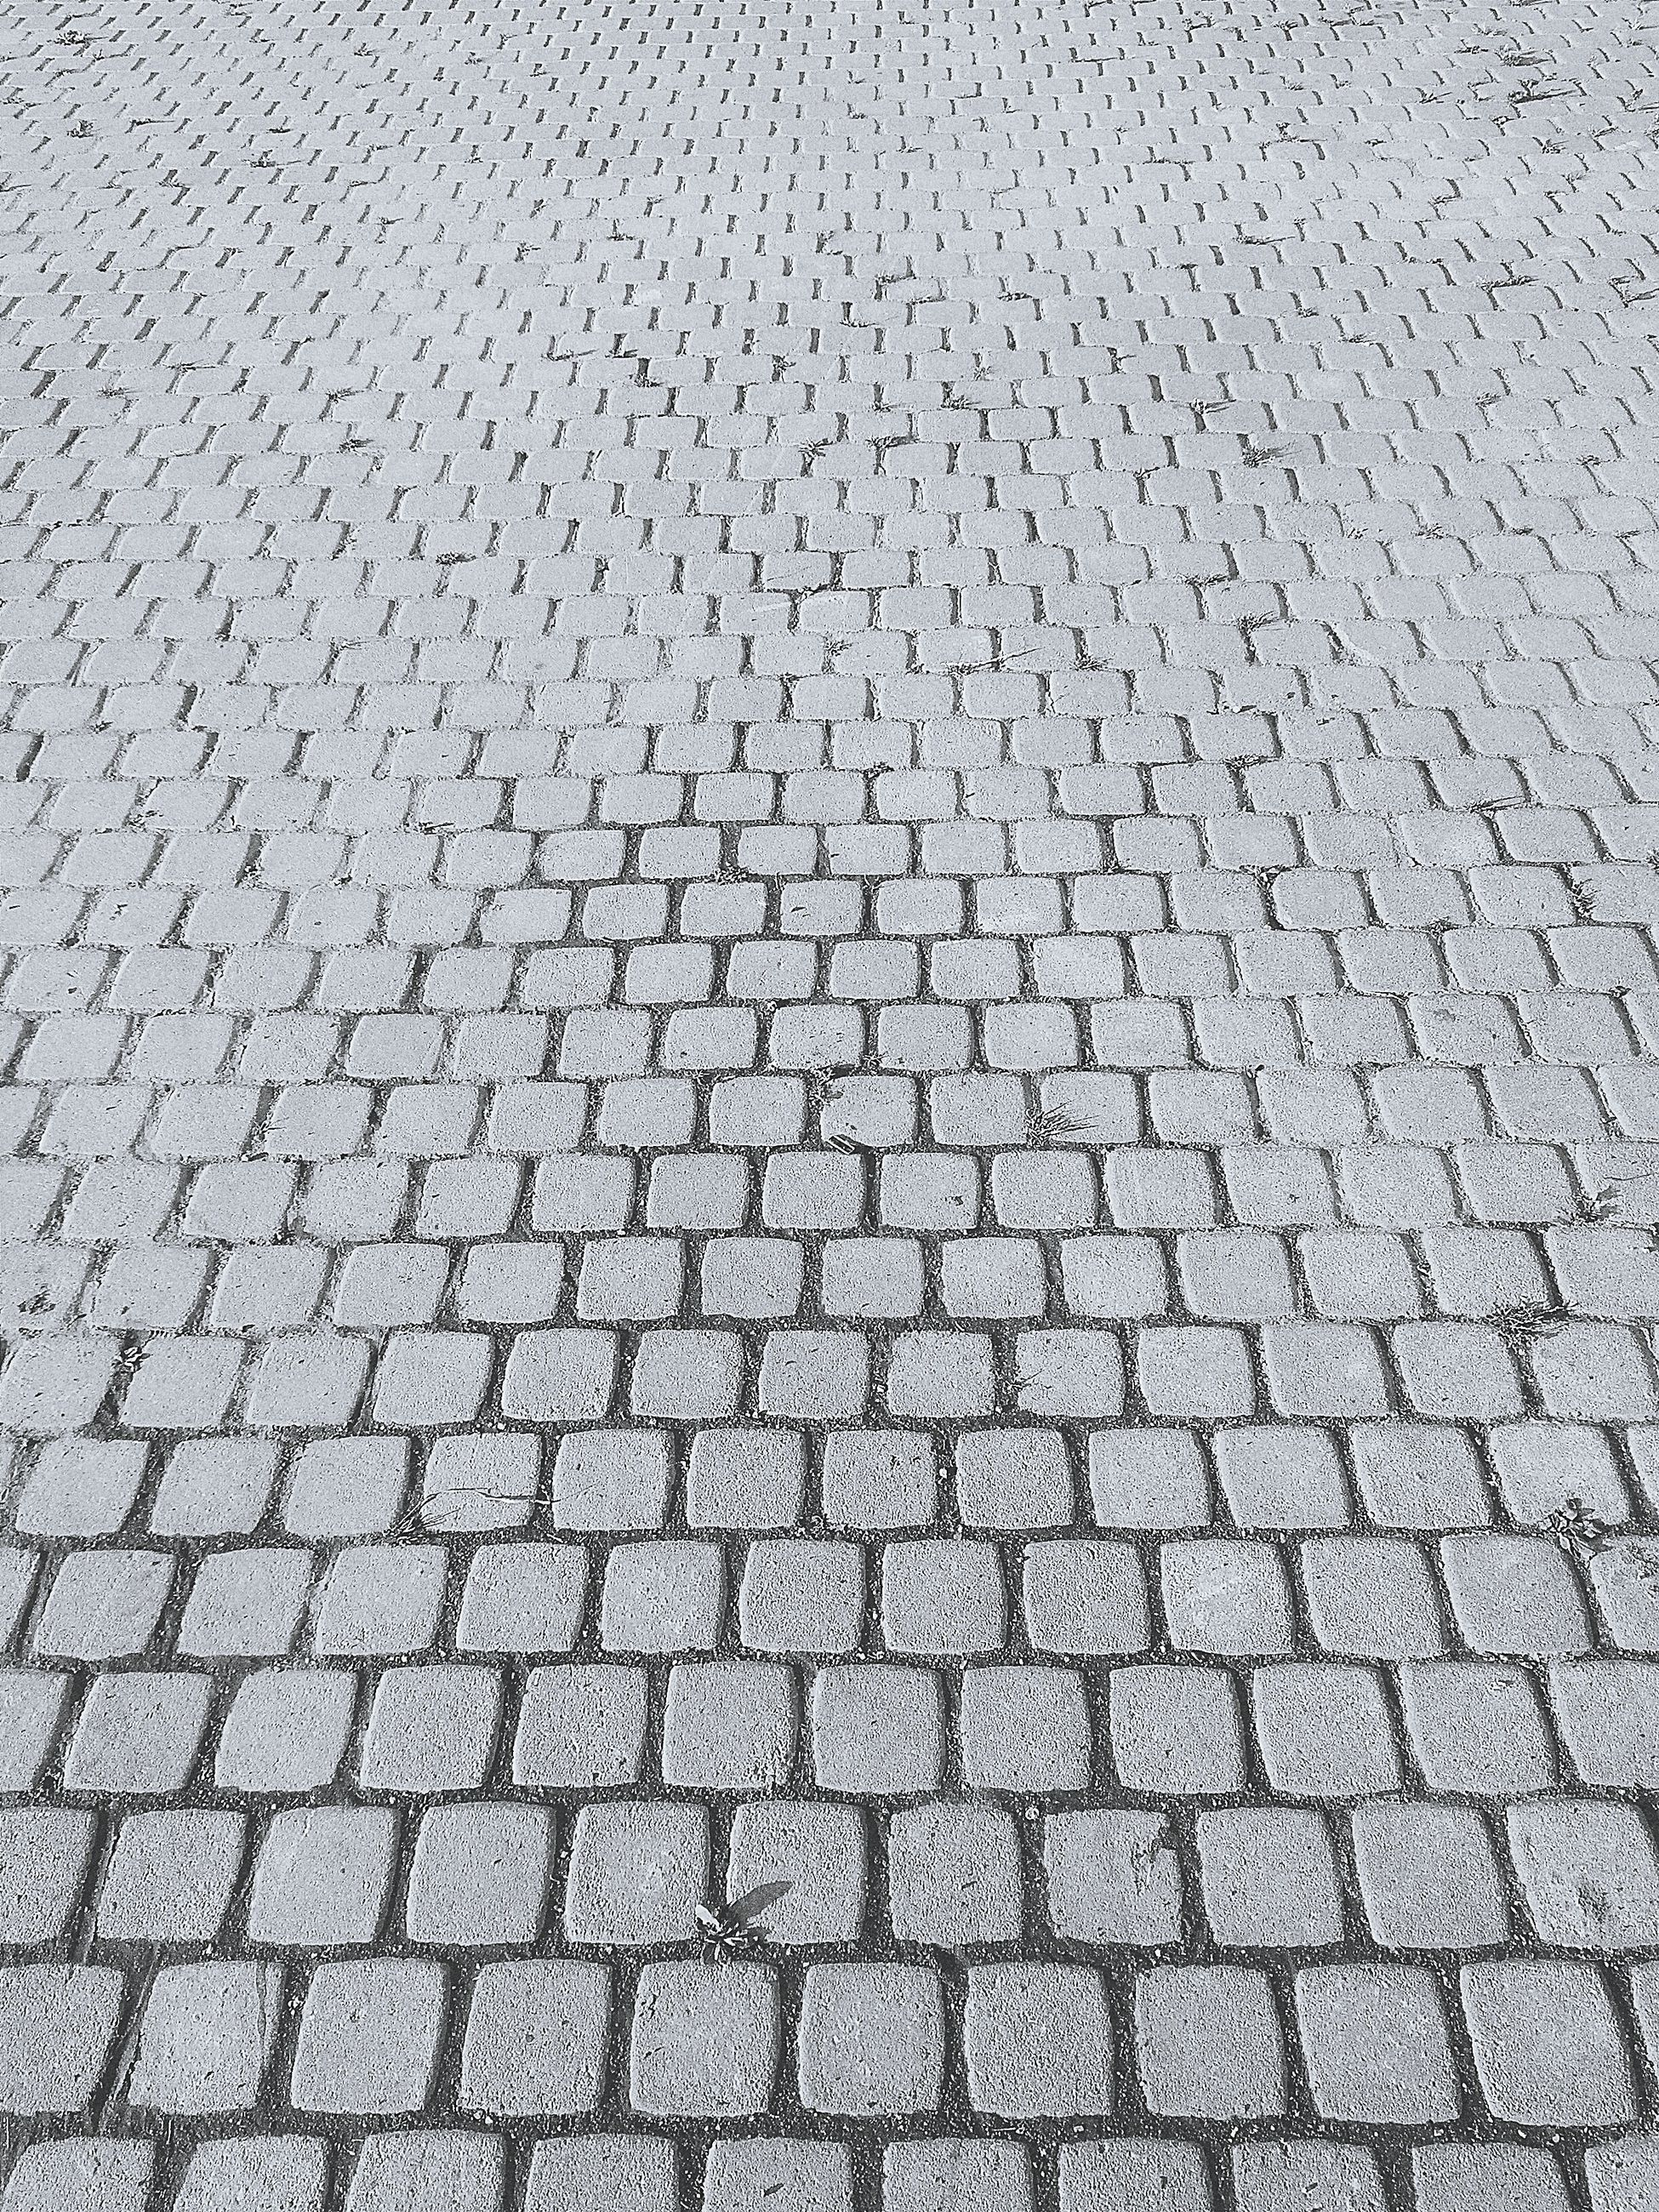 backgrounds, full frame, textured, detail, close-up, paving stone, pattern, cobblestone, concrete, footpath, repetition, day, stone material, outdoors, grey, stone tile, geometric shape, surface level, no people, pedestrian walkway, extreme close up, patterned